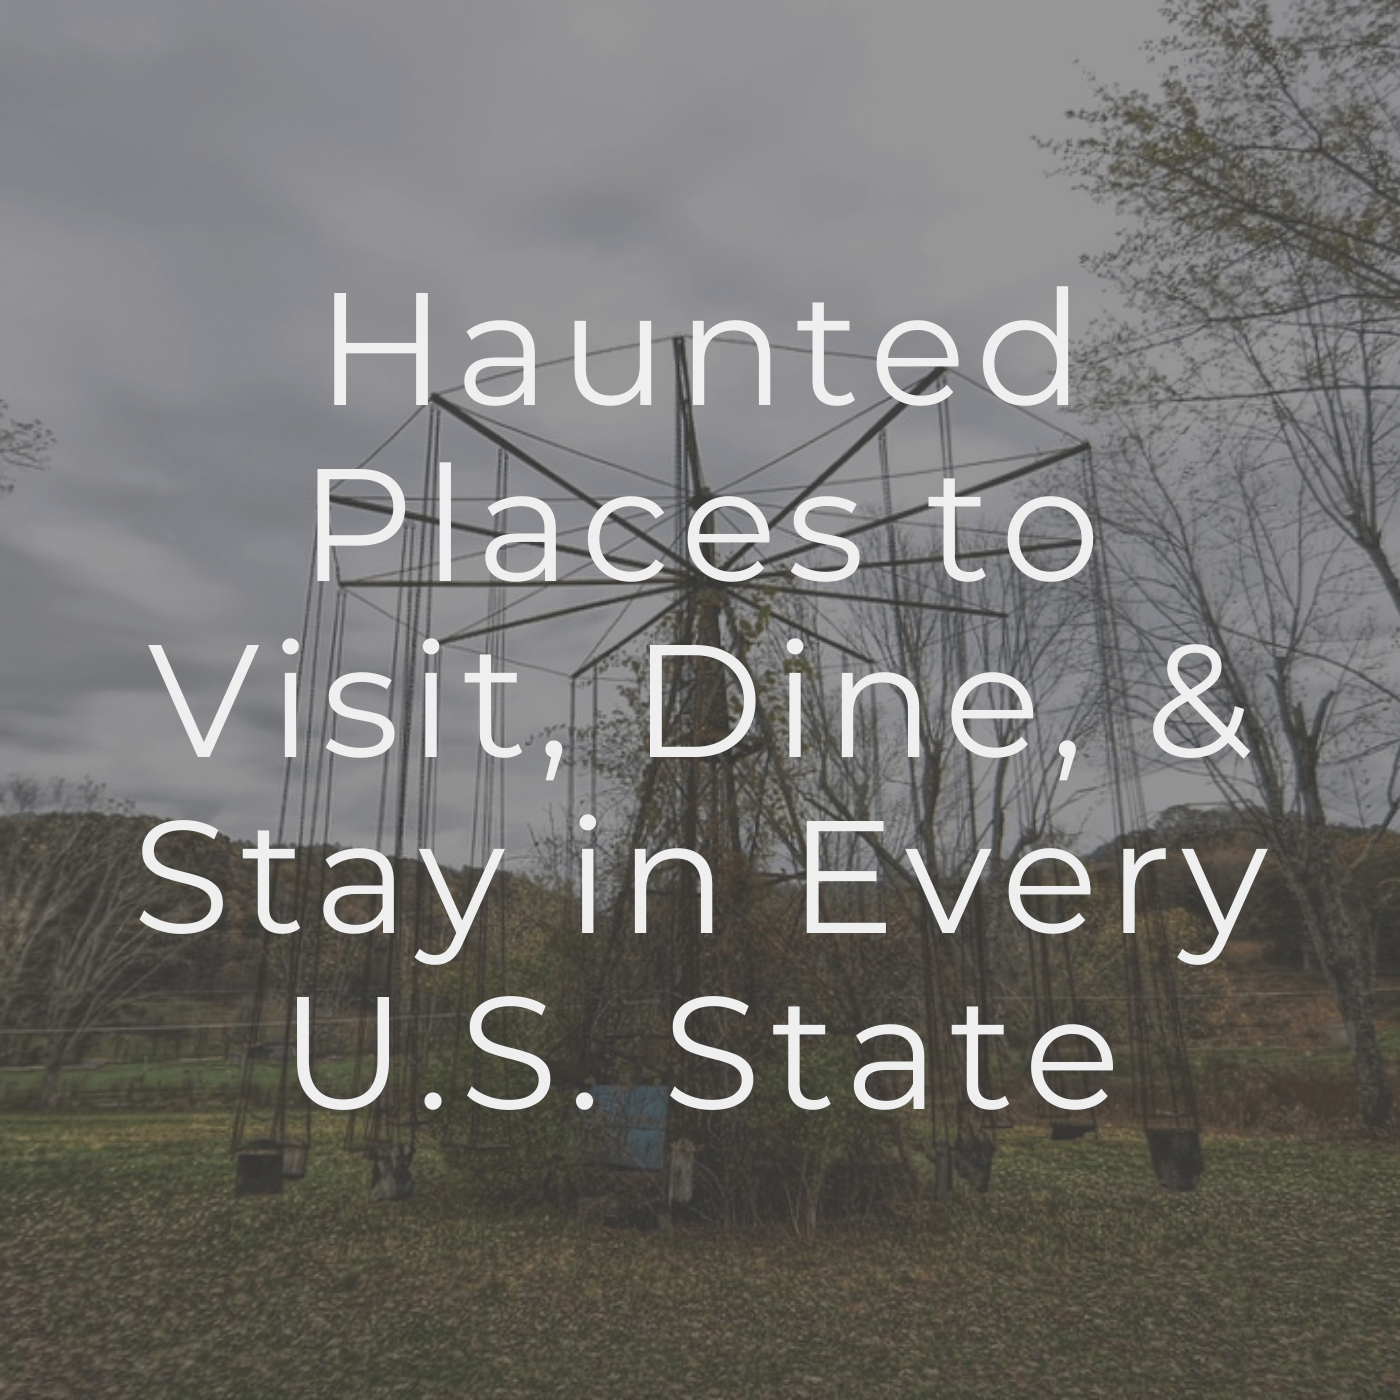 Haunted Places to Visit, Dine, & Stay in Every U.S. State